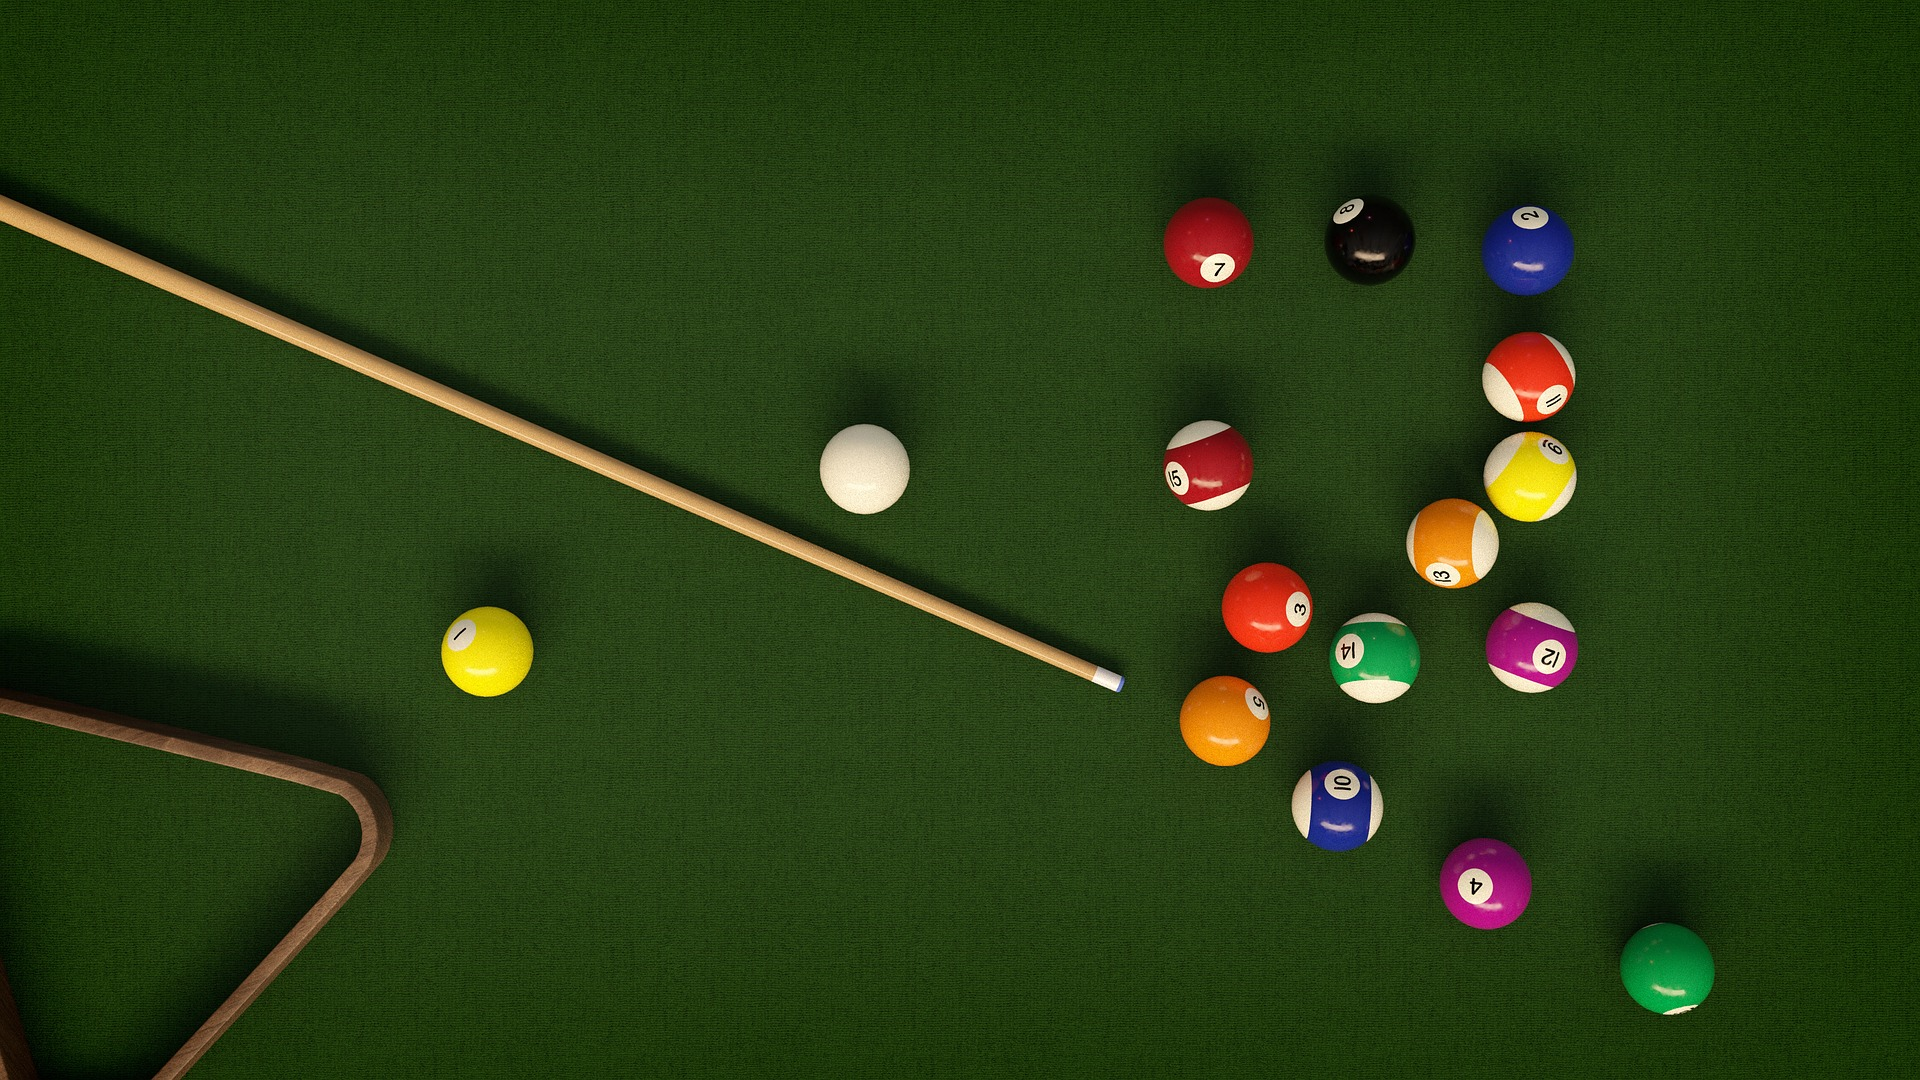 Buffalo Billiards is auctioning off their pool table after the bar's closing day. Image courtesy of Pixabay user Piro4d.